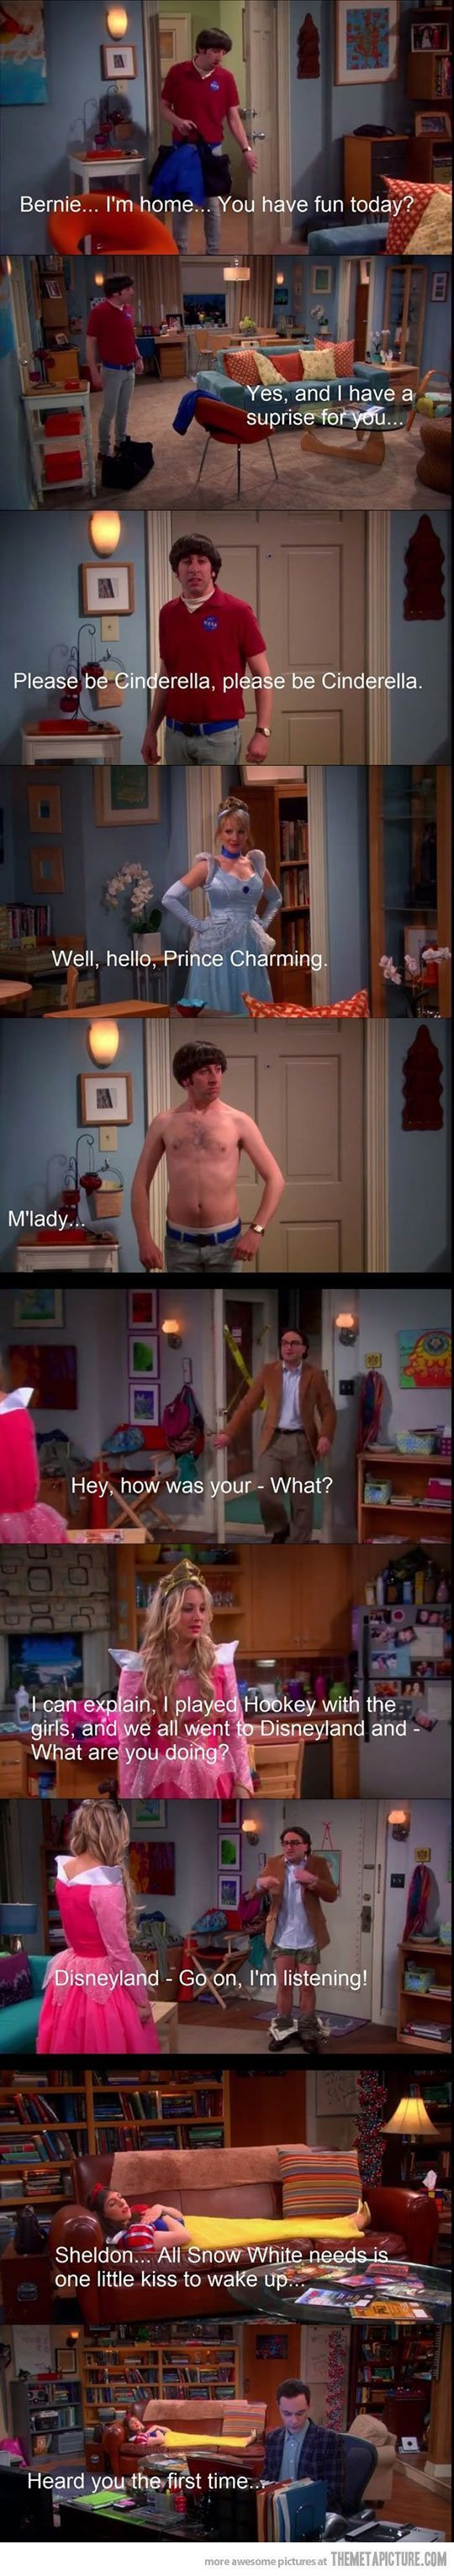 Big Bang Theory crossover